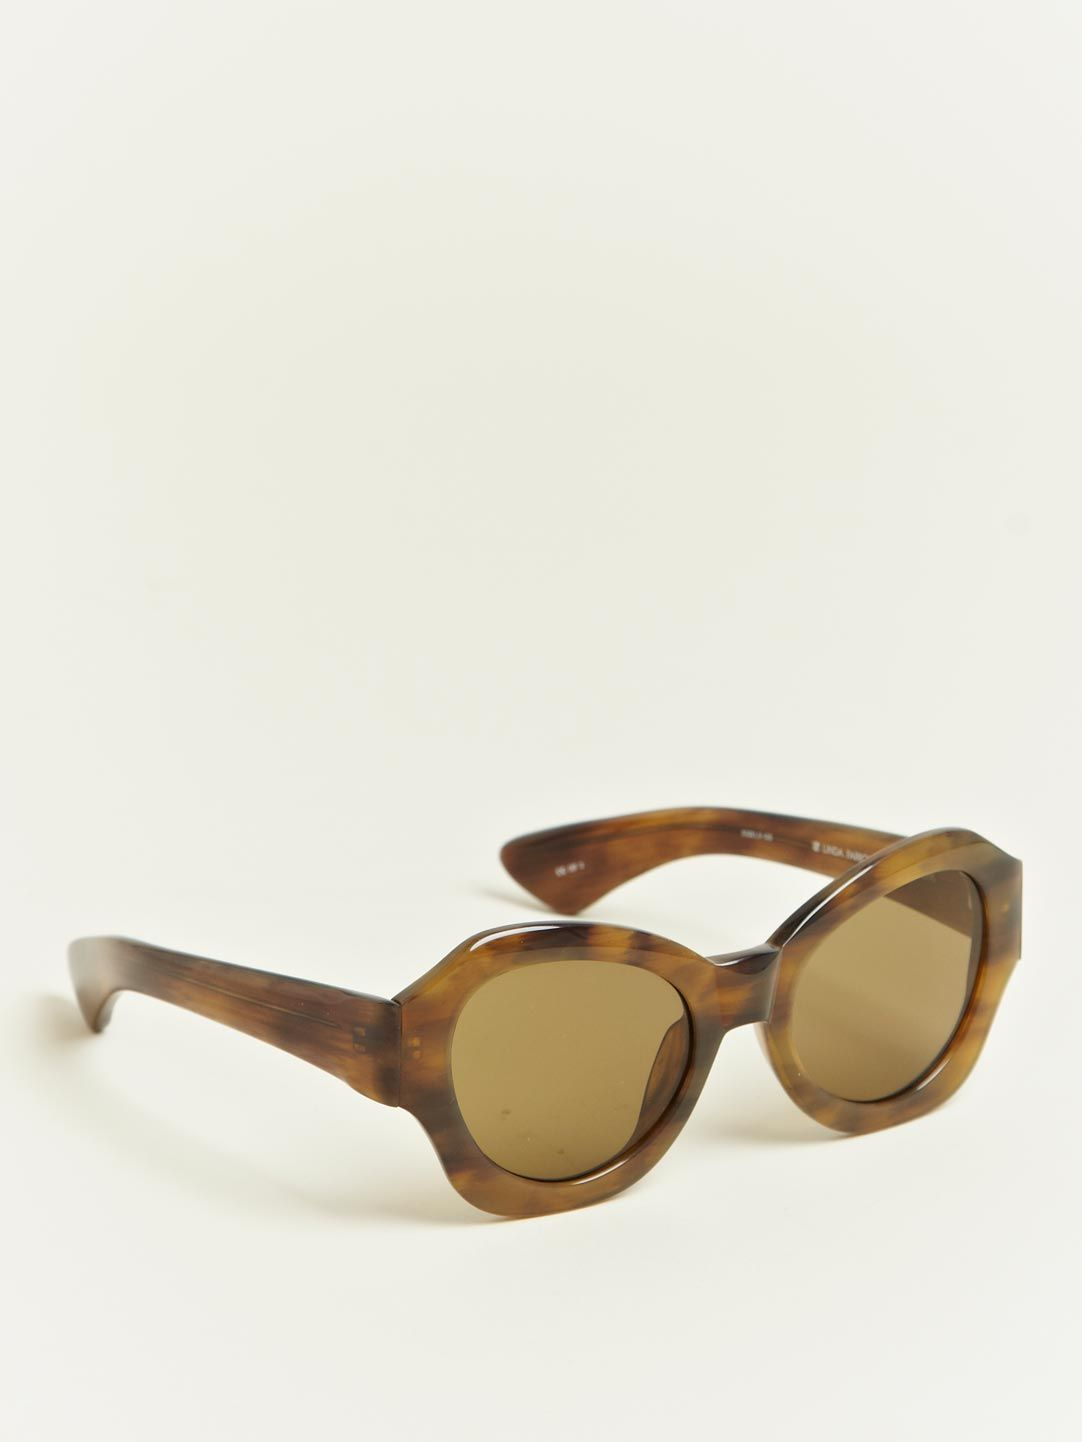 f43e576e3cdc linda farrow x dries van noten sunnies